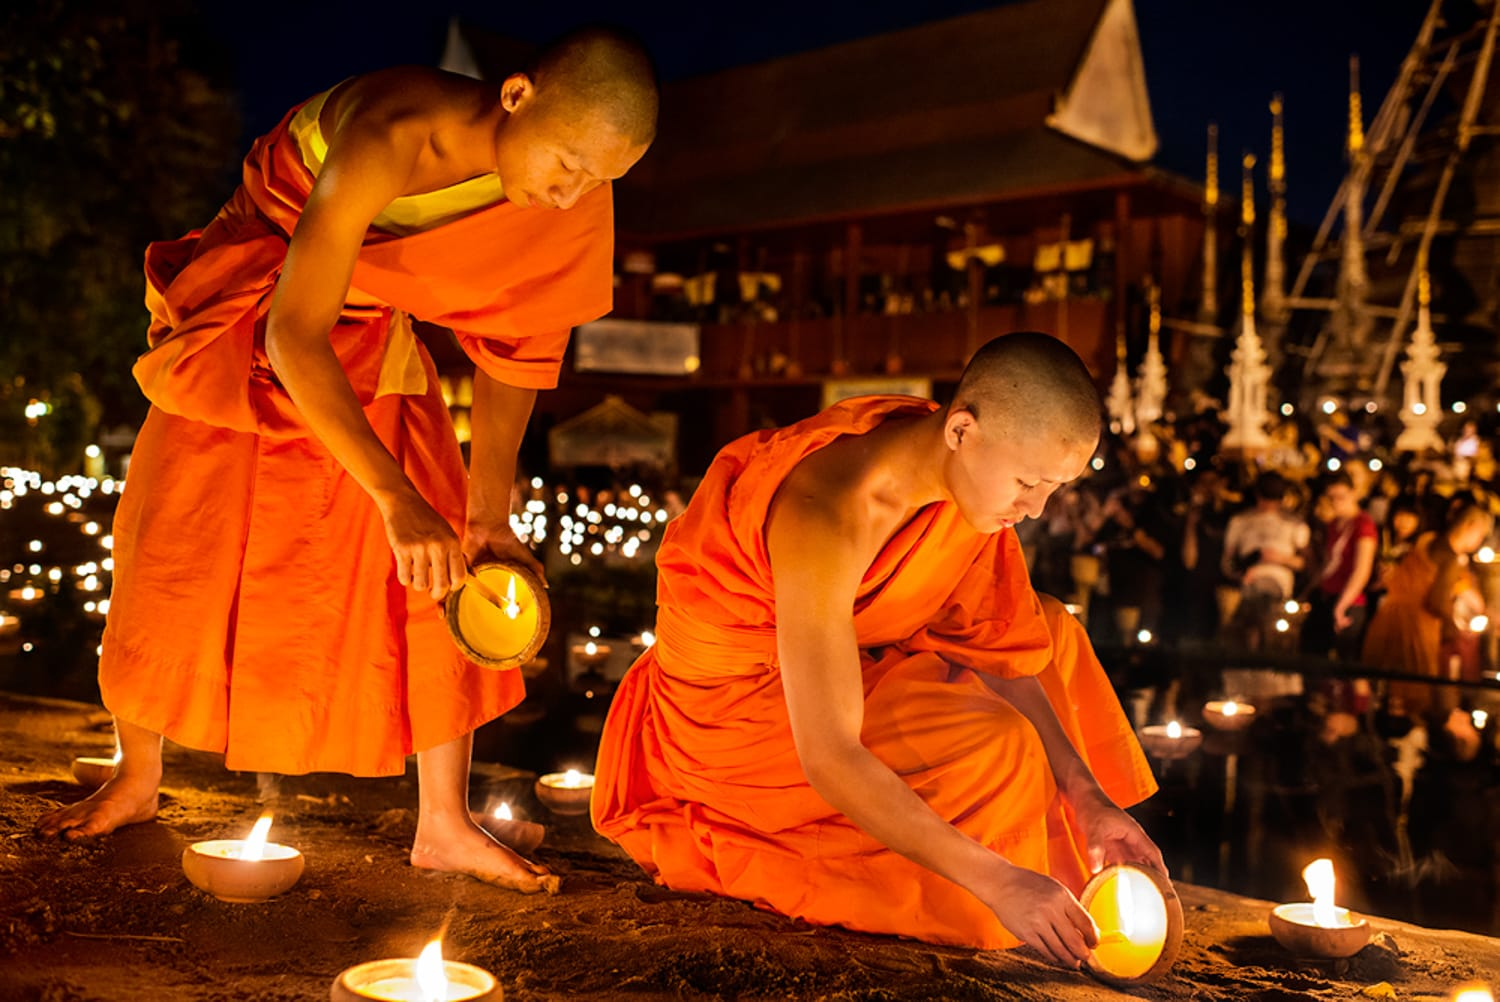 Young monks light candles during the Macha Pucha celebration at at Wat Pan Tao, Chiang Mai, Thailand, Asia.